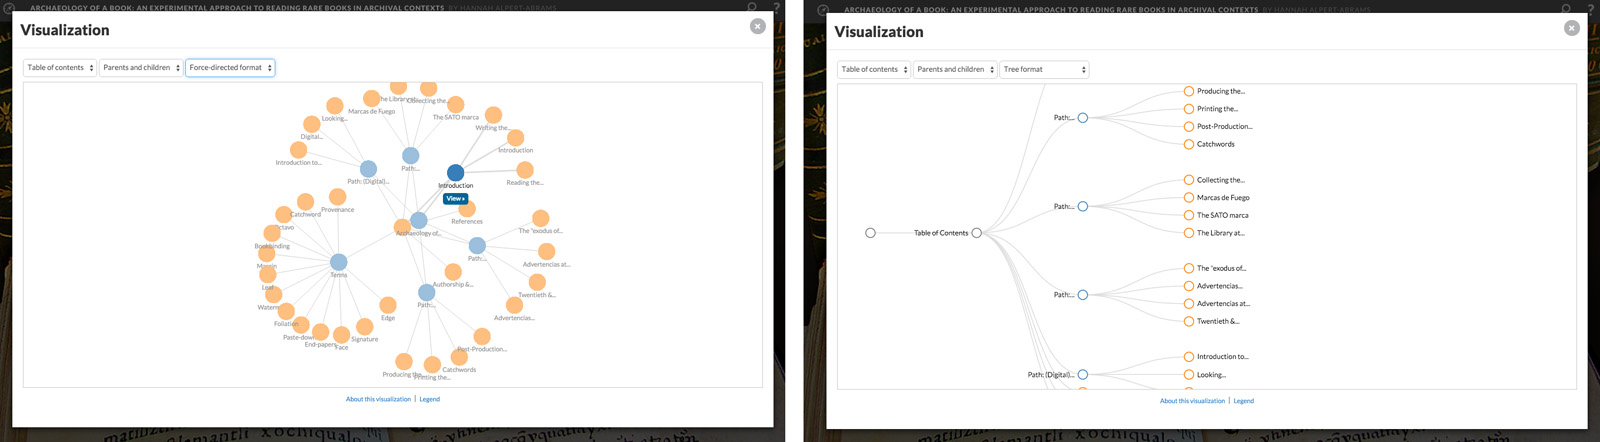 """Figure 5: Two visualizations showing the organizational structure of                         Archaeology of a Book. """"Visualization,"""" Archaeology of a Book, Scalar,                         accessed December 31, 2015,                         http://scalar.usc.edu/works/advertencias/index."""